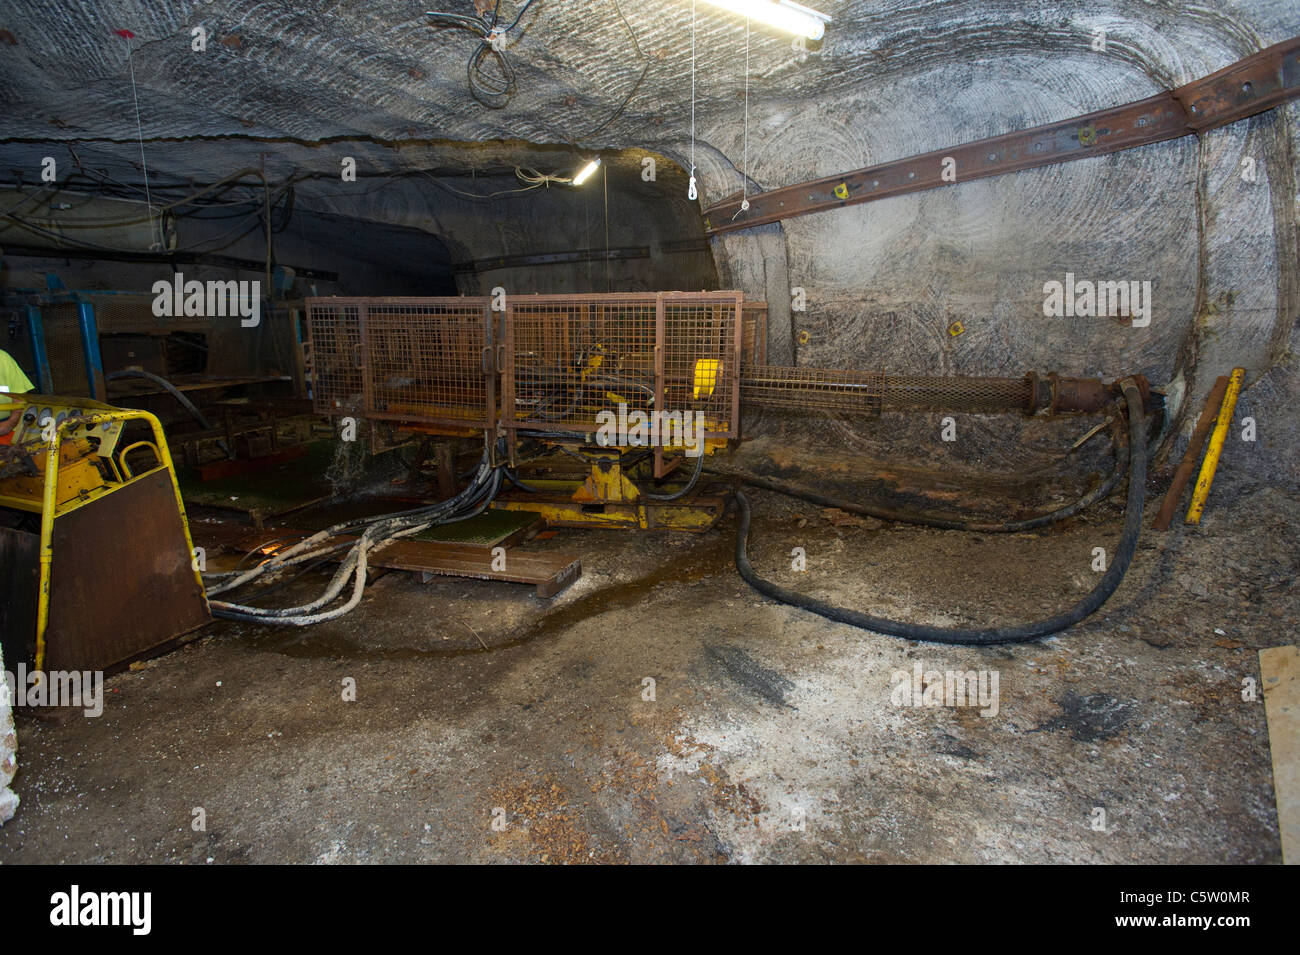 Drilling a core sample in Boulby Potash mine - Stock Image